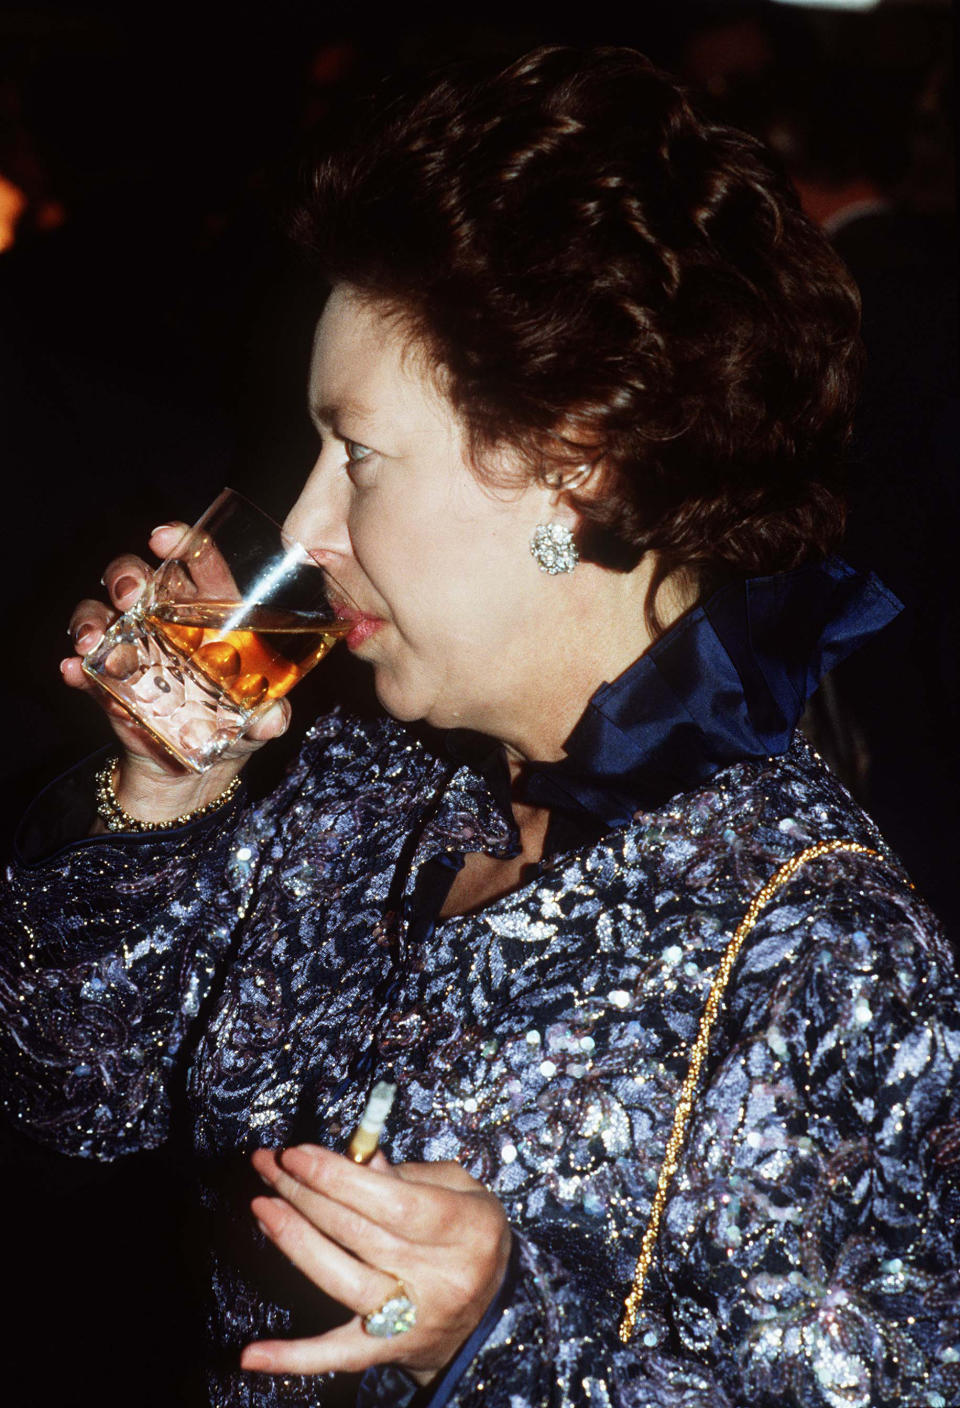 LONDON, ENGLAND - JANUARY 01:  Princess Margaret drinks and smokes at a party circa 1980 in London, England (Photo by Anwar Hussein/Getty Images)